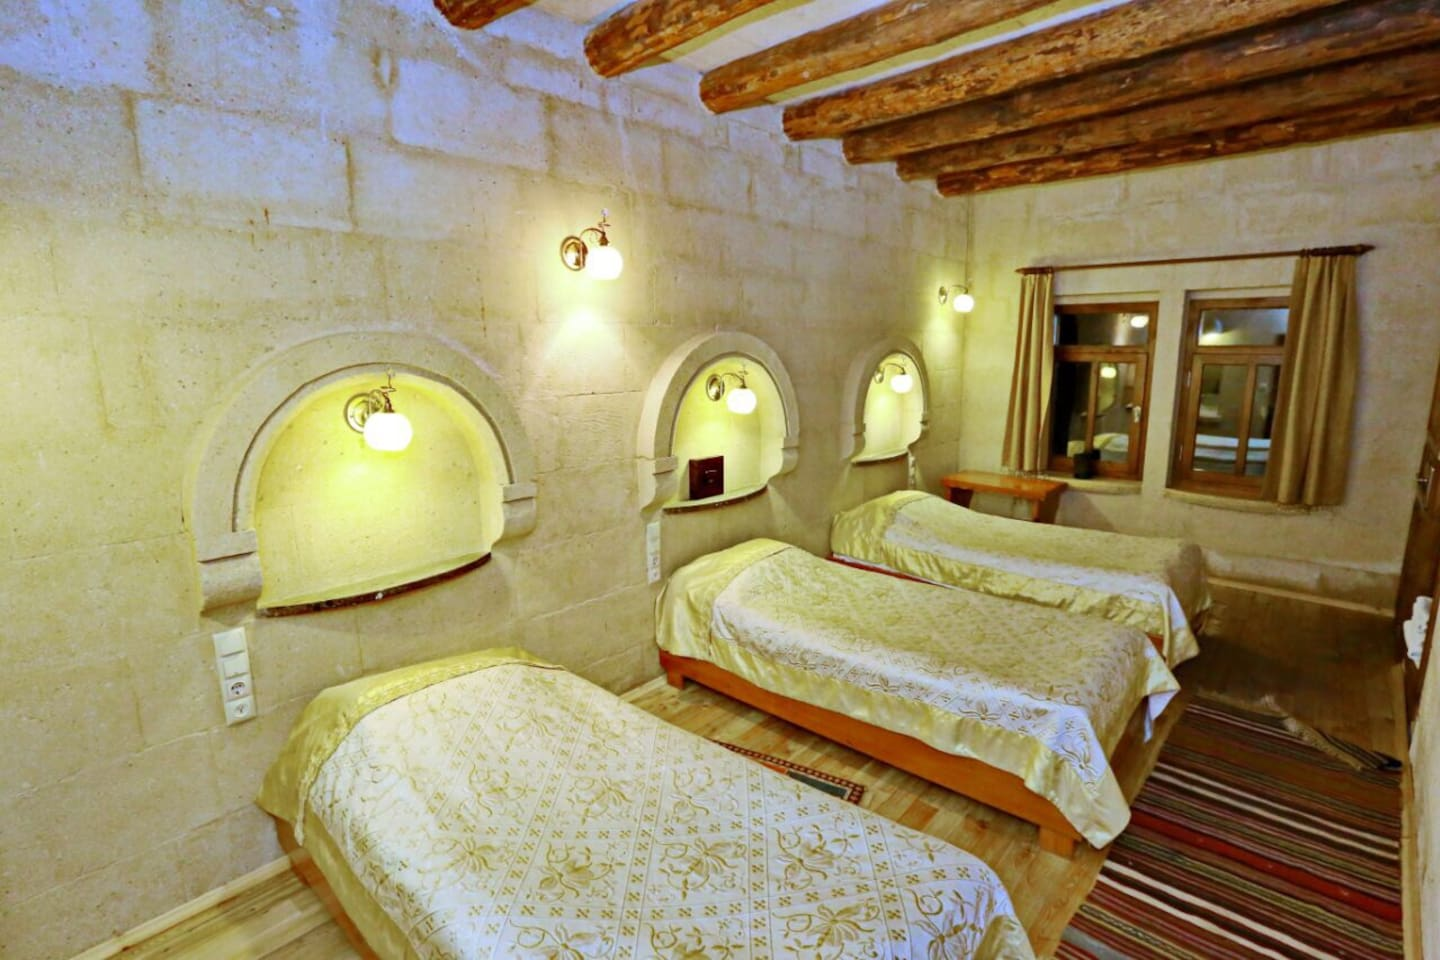 Cozy Cave lıke room, all yours! ...